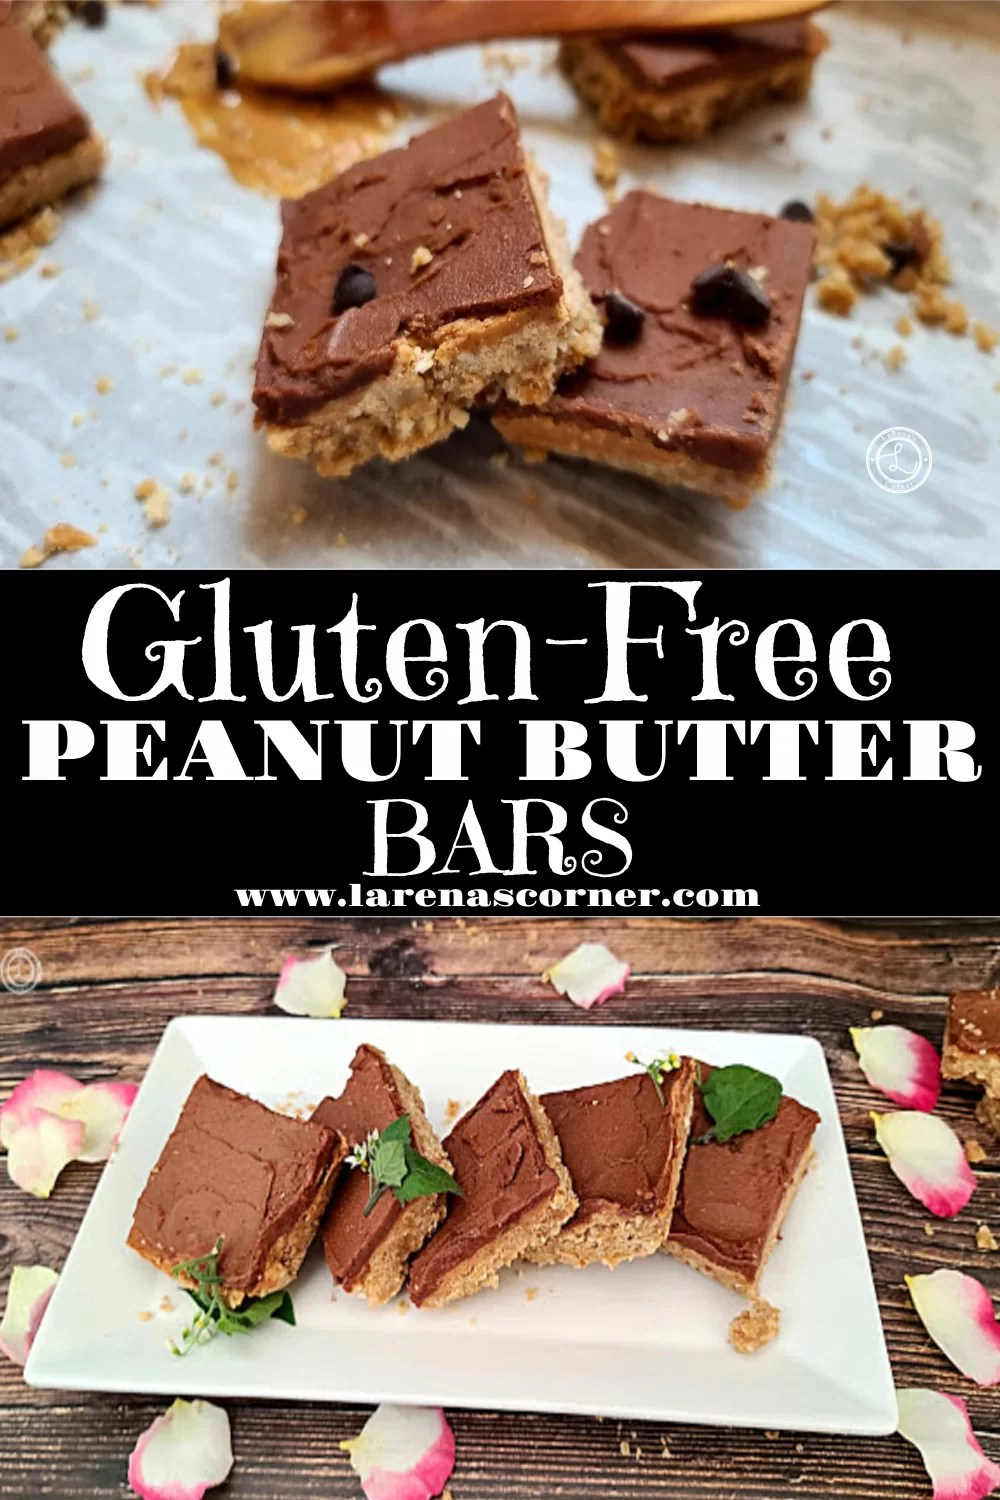 Two pictures of Gluten-Free Peanut Butter Bars one picture of them on parchment paper with peanut butter in the background and one picture of them on a plate.